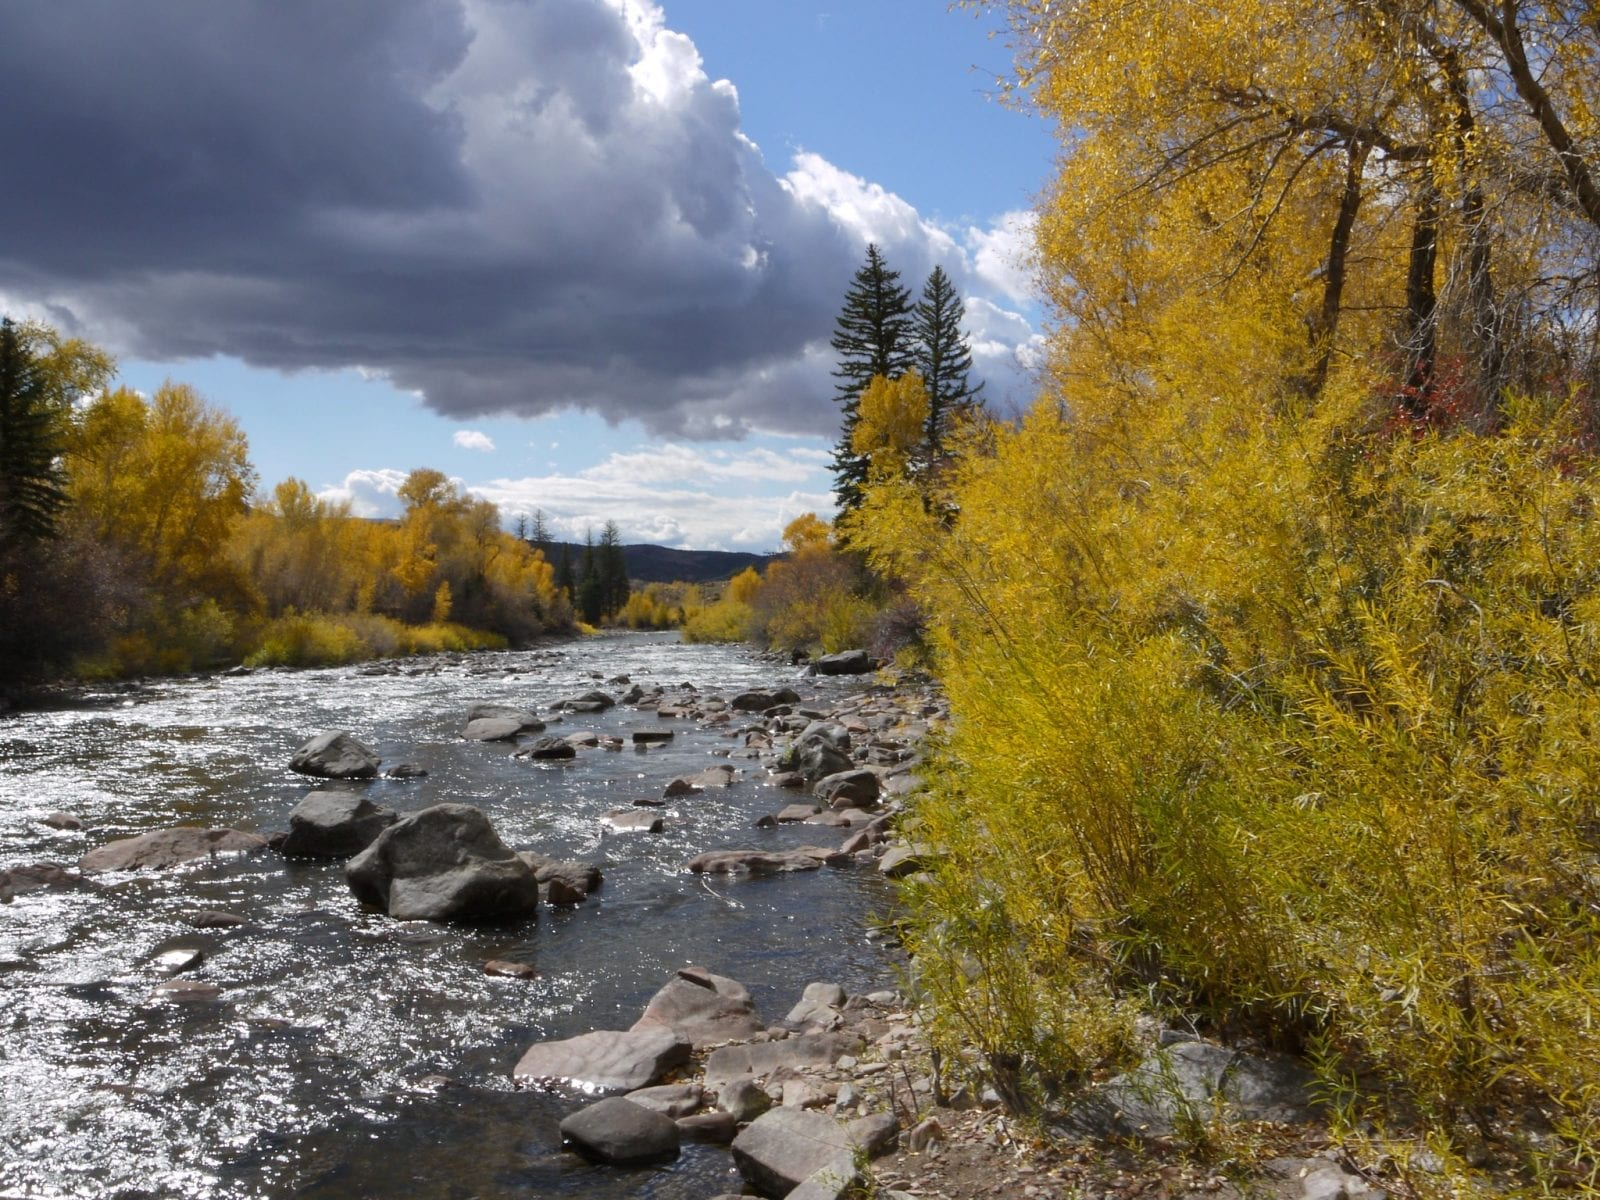 Image of the Eagle River in Colorado on the way to Glenwood Springs